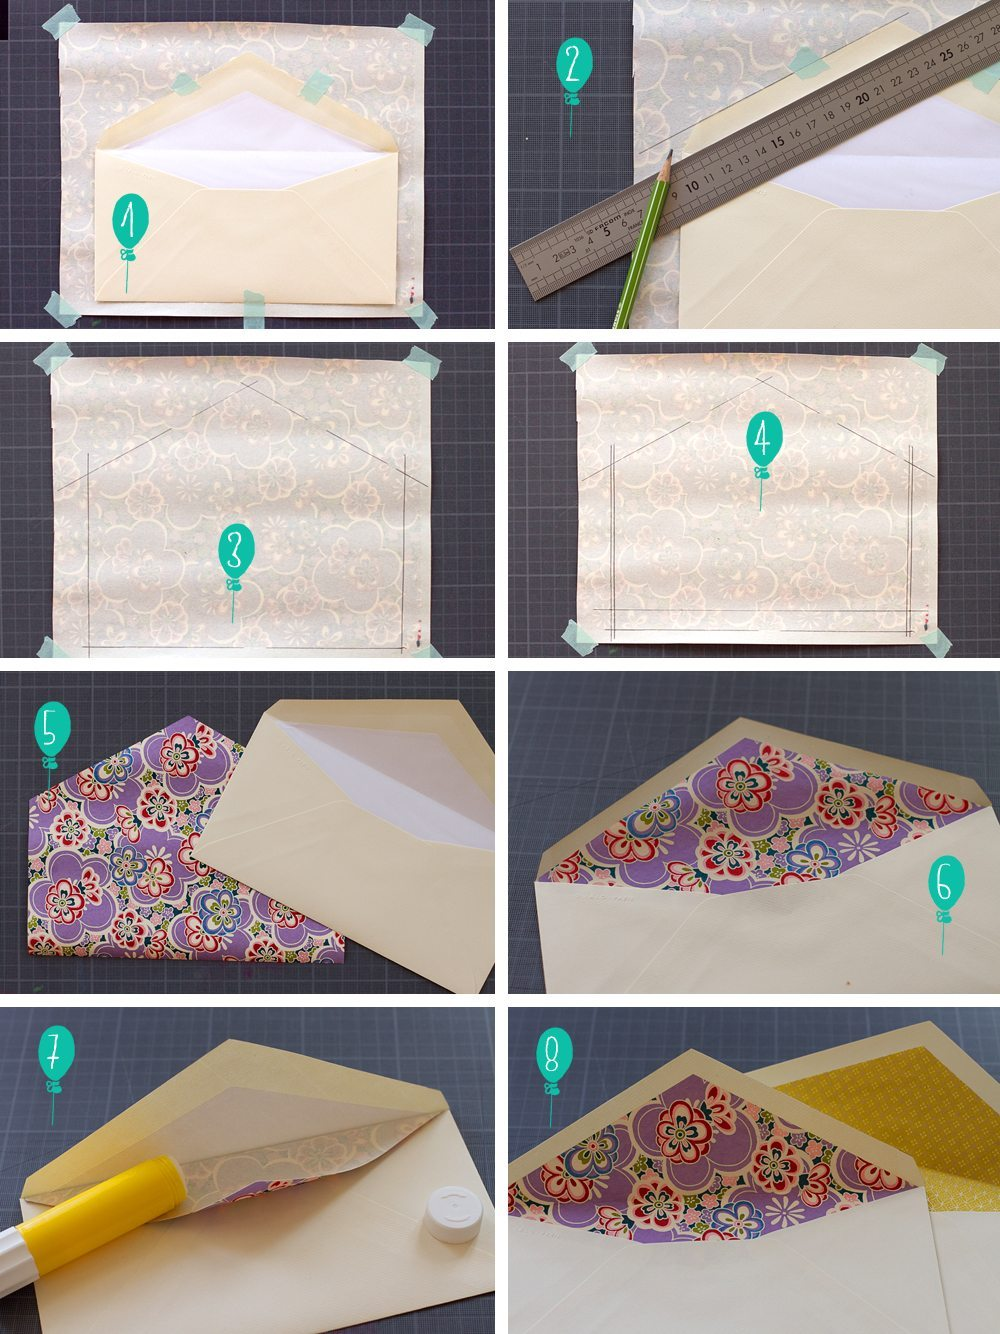 diy les enveloppes graaaand luxe blog mariage mariage original pacs d co. Black Bedroom Furniture Sets. Home Design Ideas